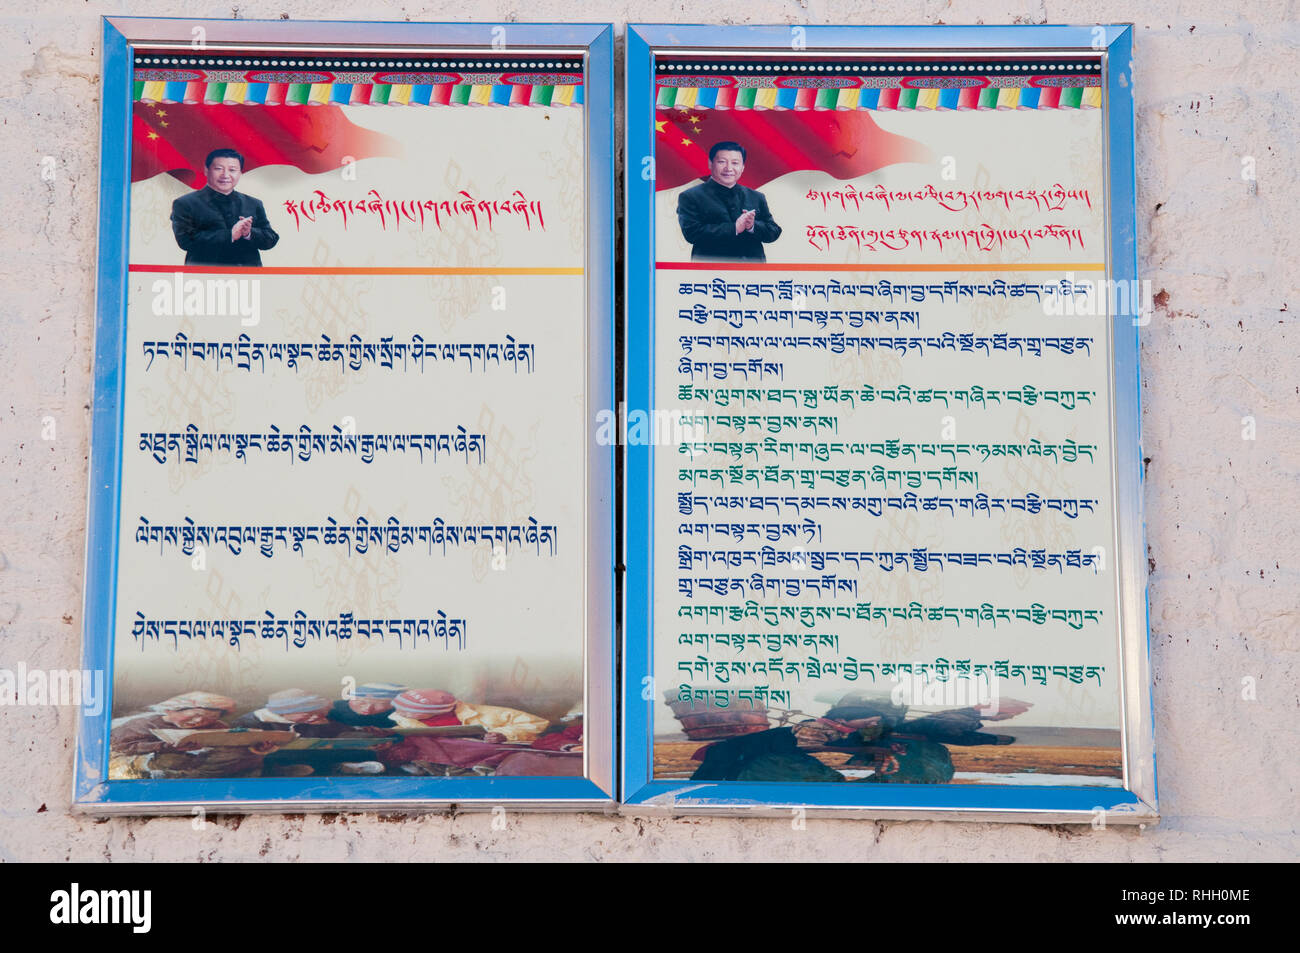 Tibetan-language propaganda message from President Xi Jinping posted on a wall at Ganden Monastery, outside Lhasa, Tibet, China - Stock Image